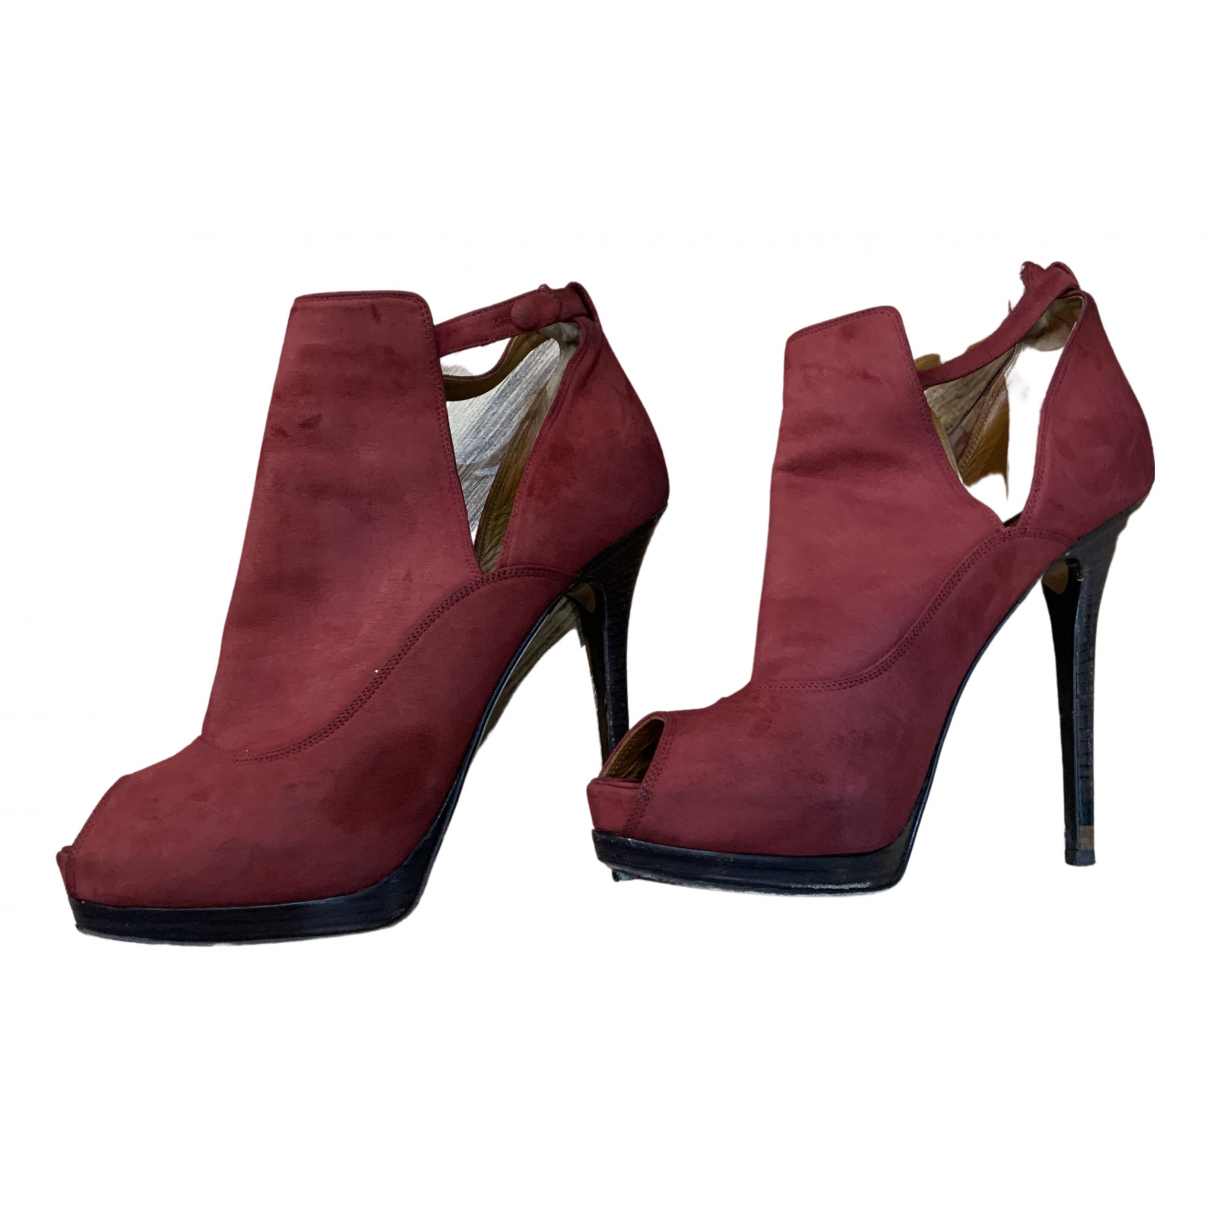 Fendi N Burgundy Suede Ankle boots for Women 40 EU